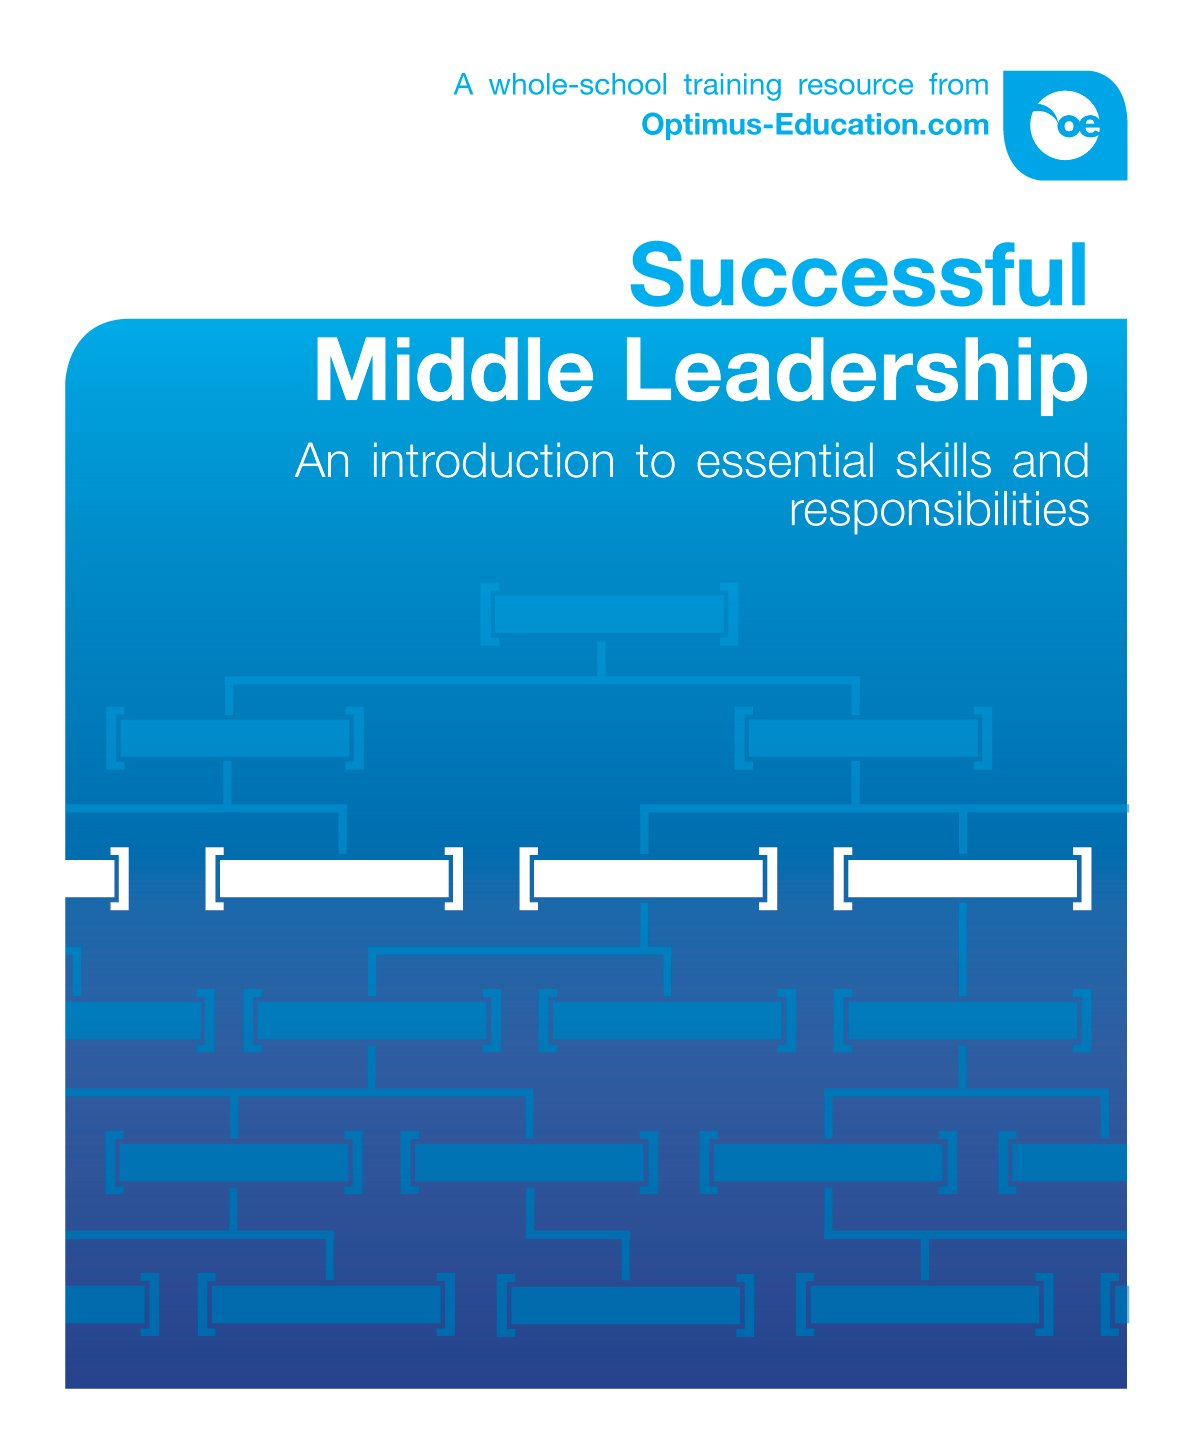 Successful Middle Leadership: An introduction to essential skills and responsibilities